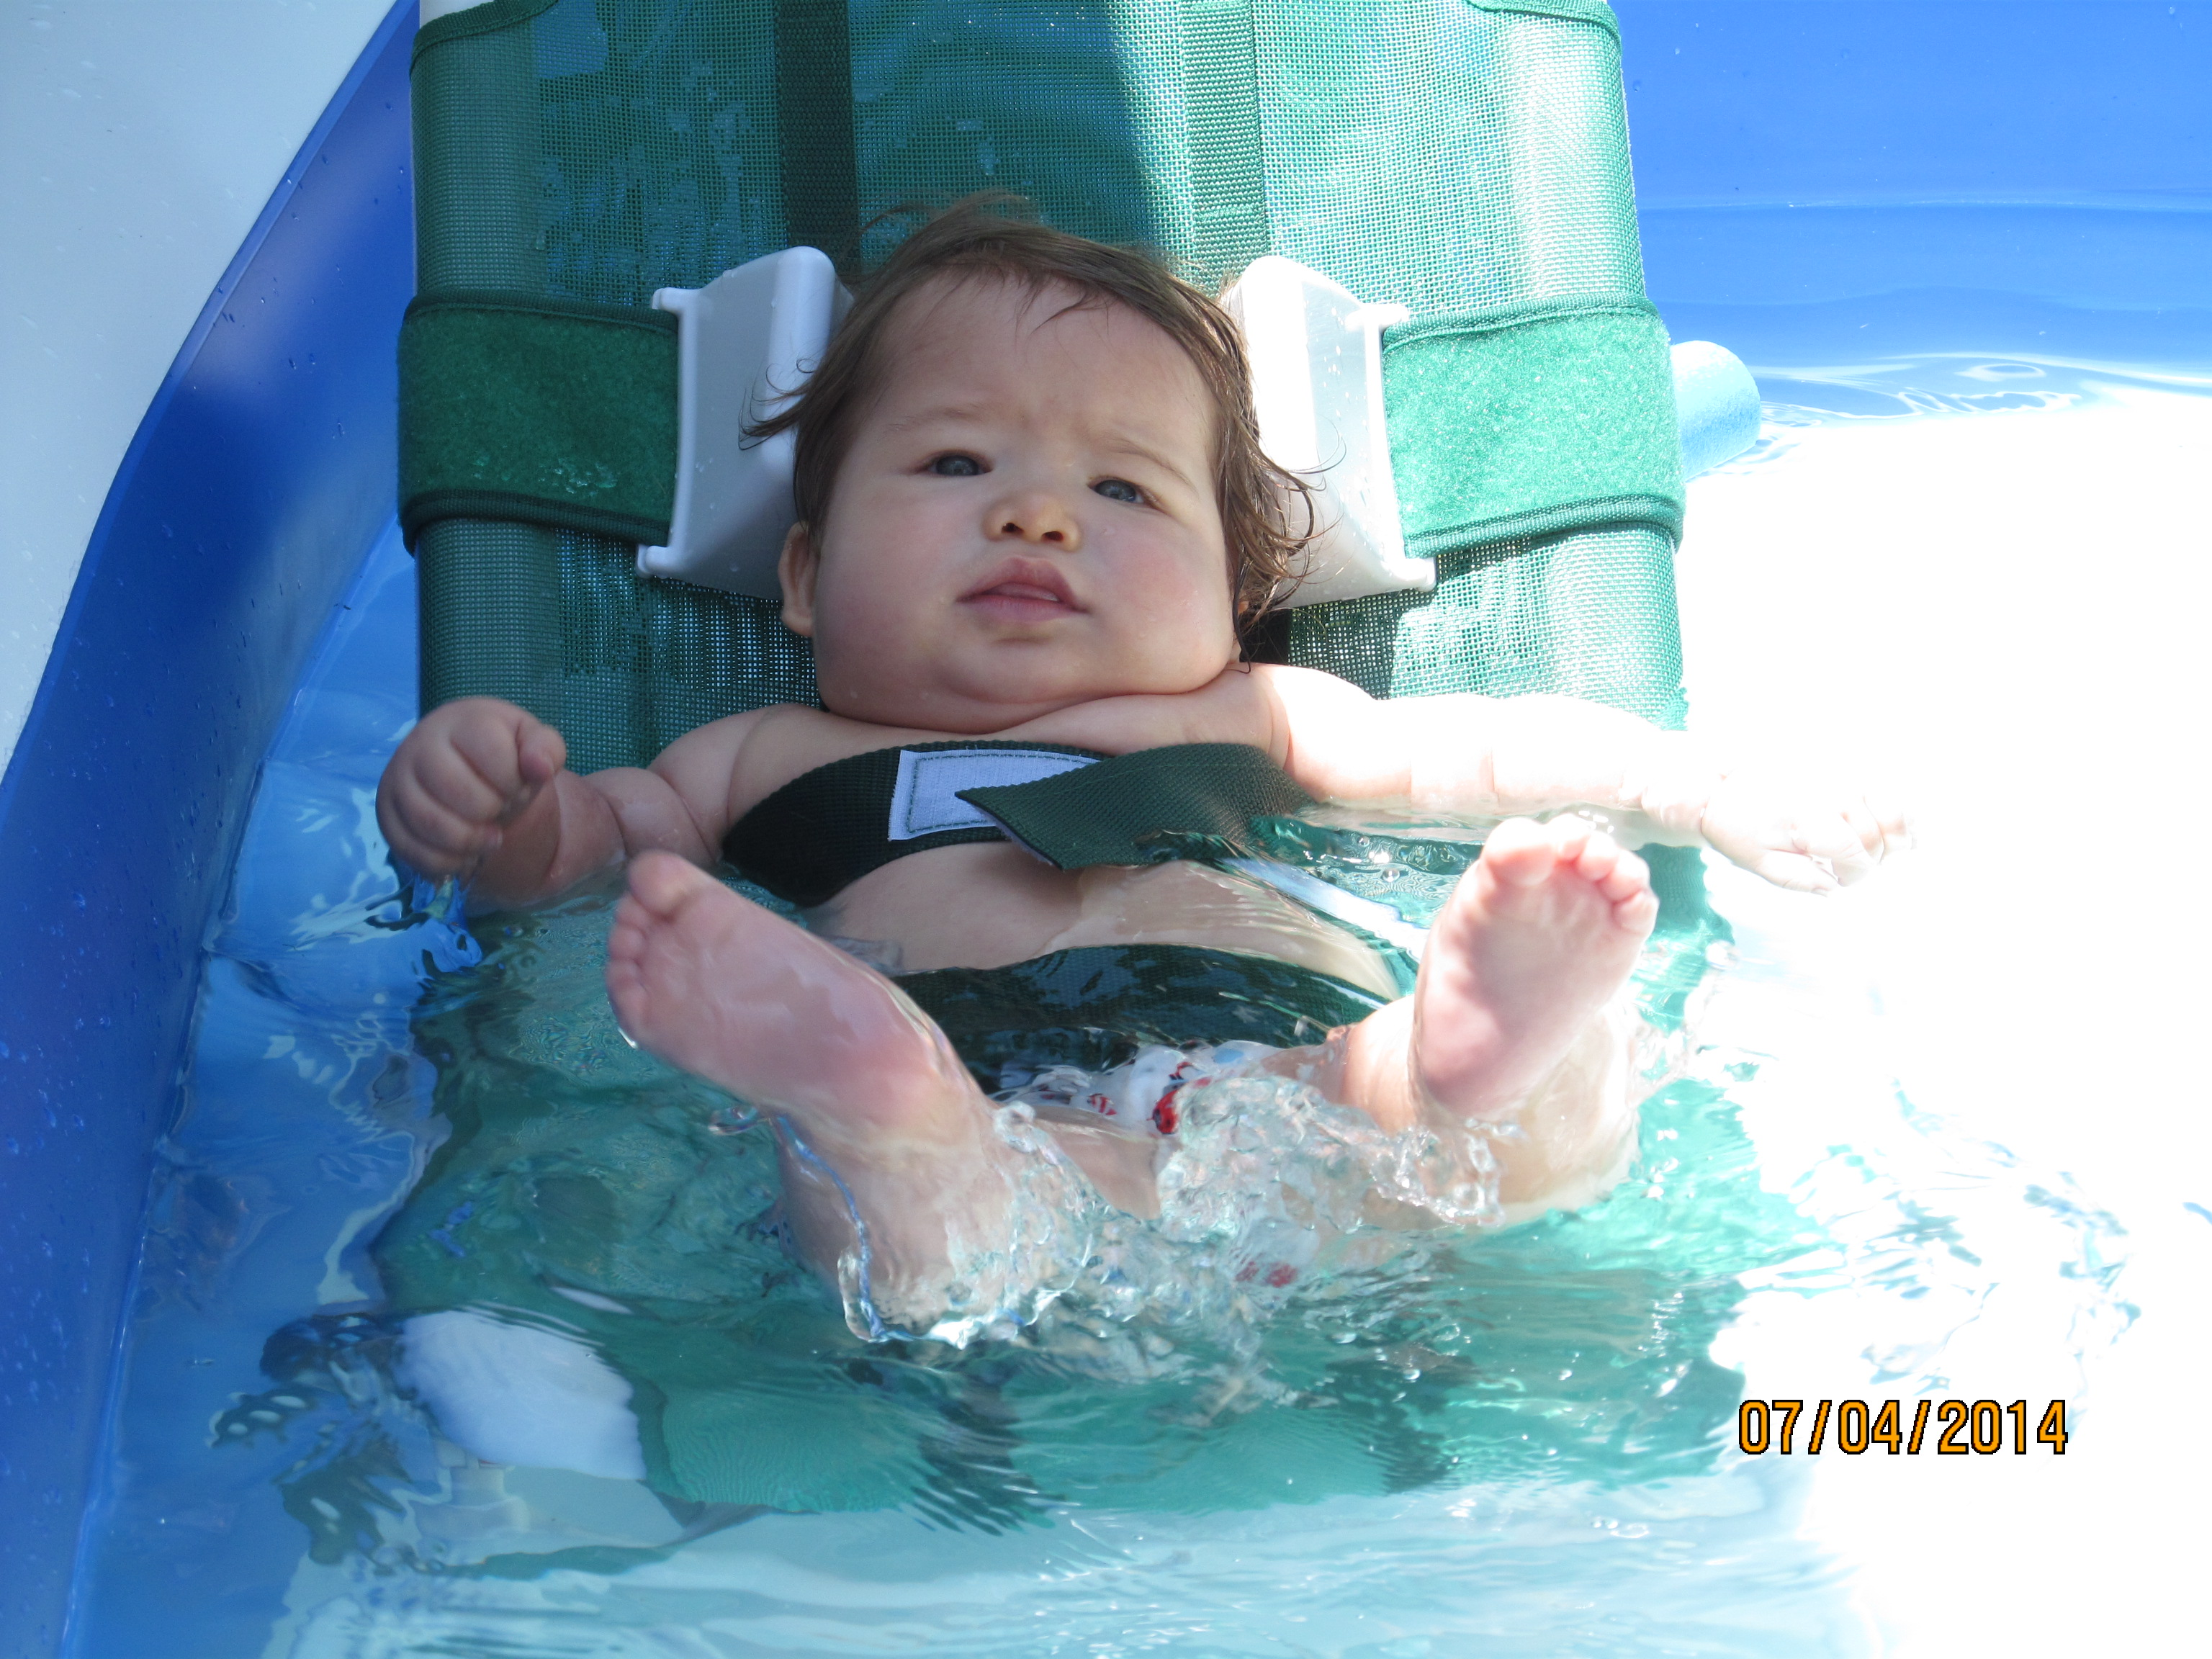 otter bath chair kids desk with parkermeetsworld s blog a peek into my life as special needs mom review on our there were only few videos this so i thought d do we like because it is very